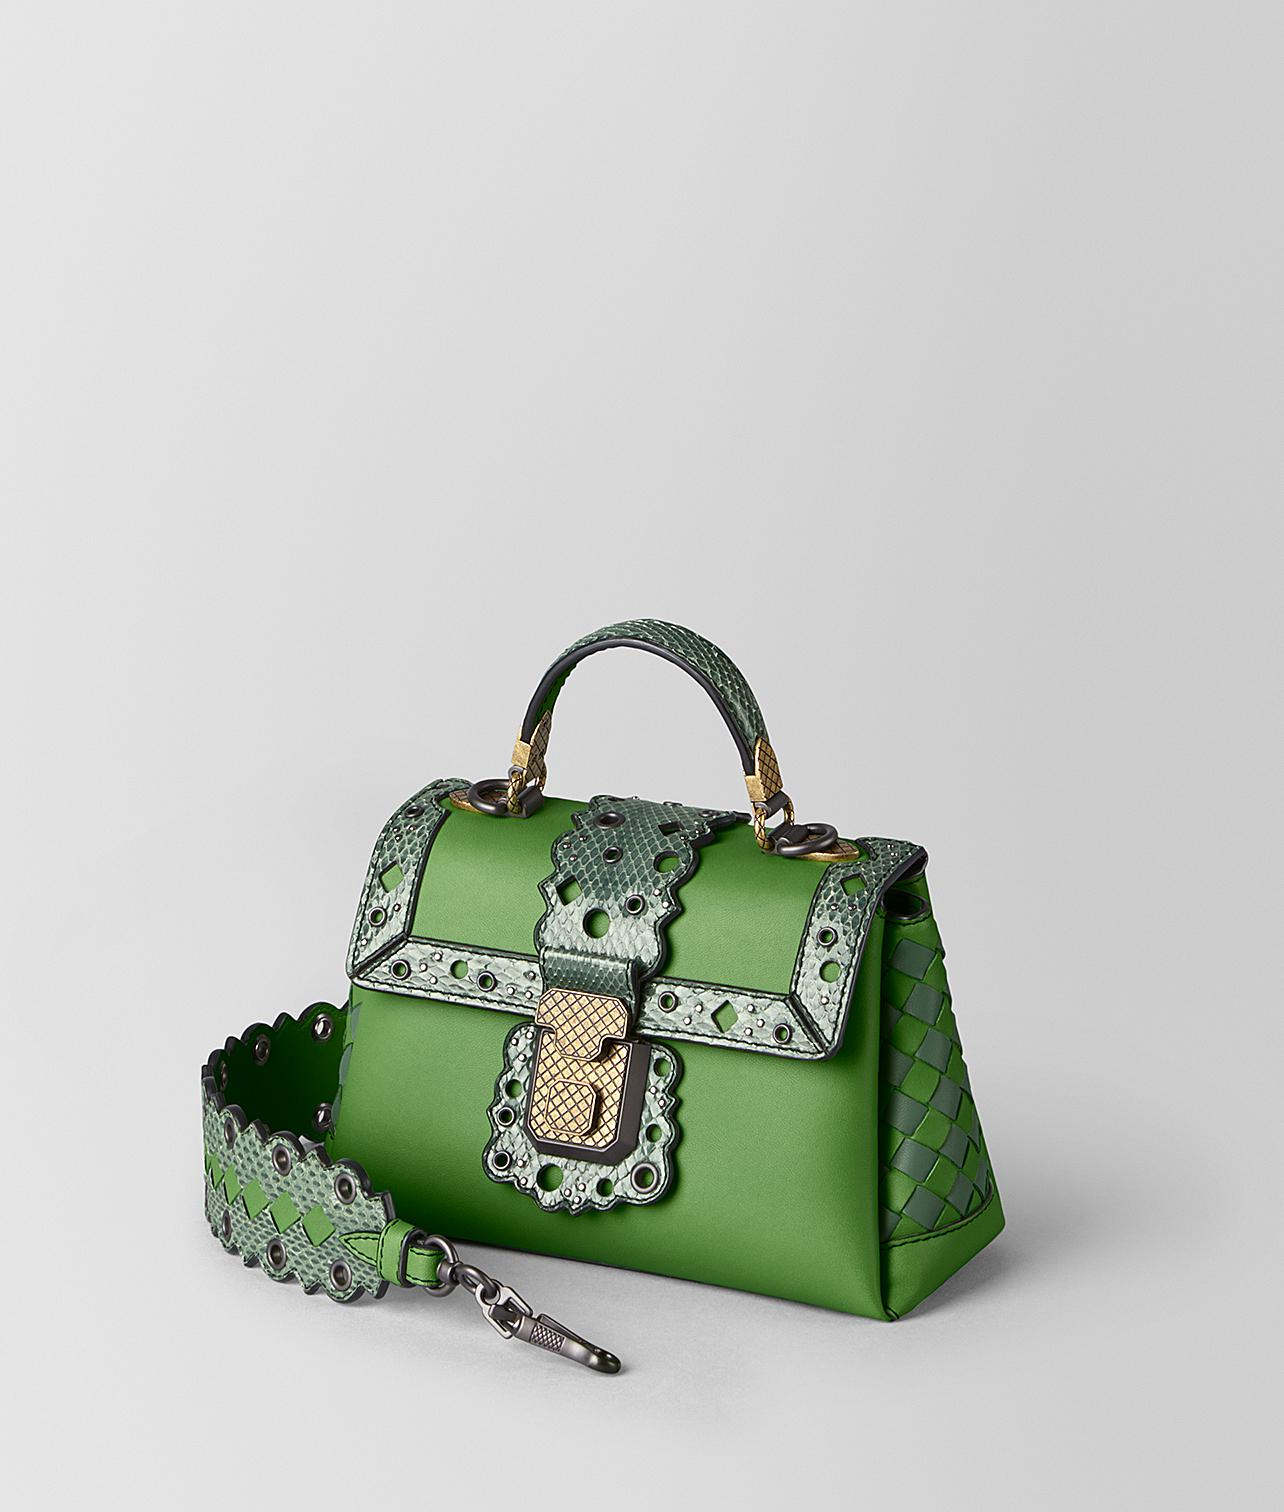 35fe94ff06 Bottega Veneta Mini Piazza Bag In Chequer Lacy in Green - Lyst